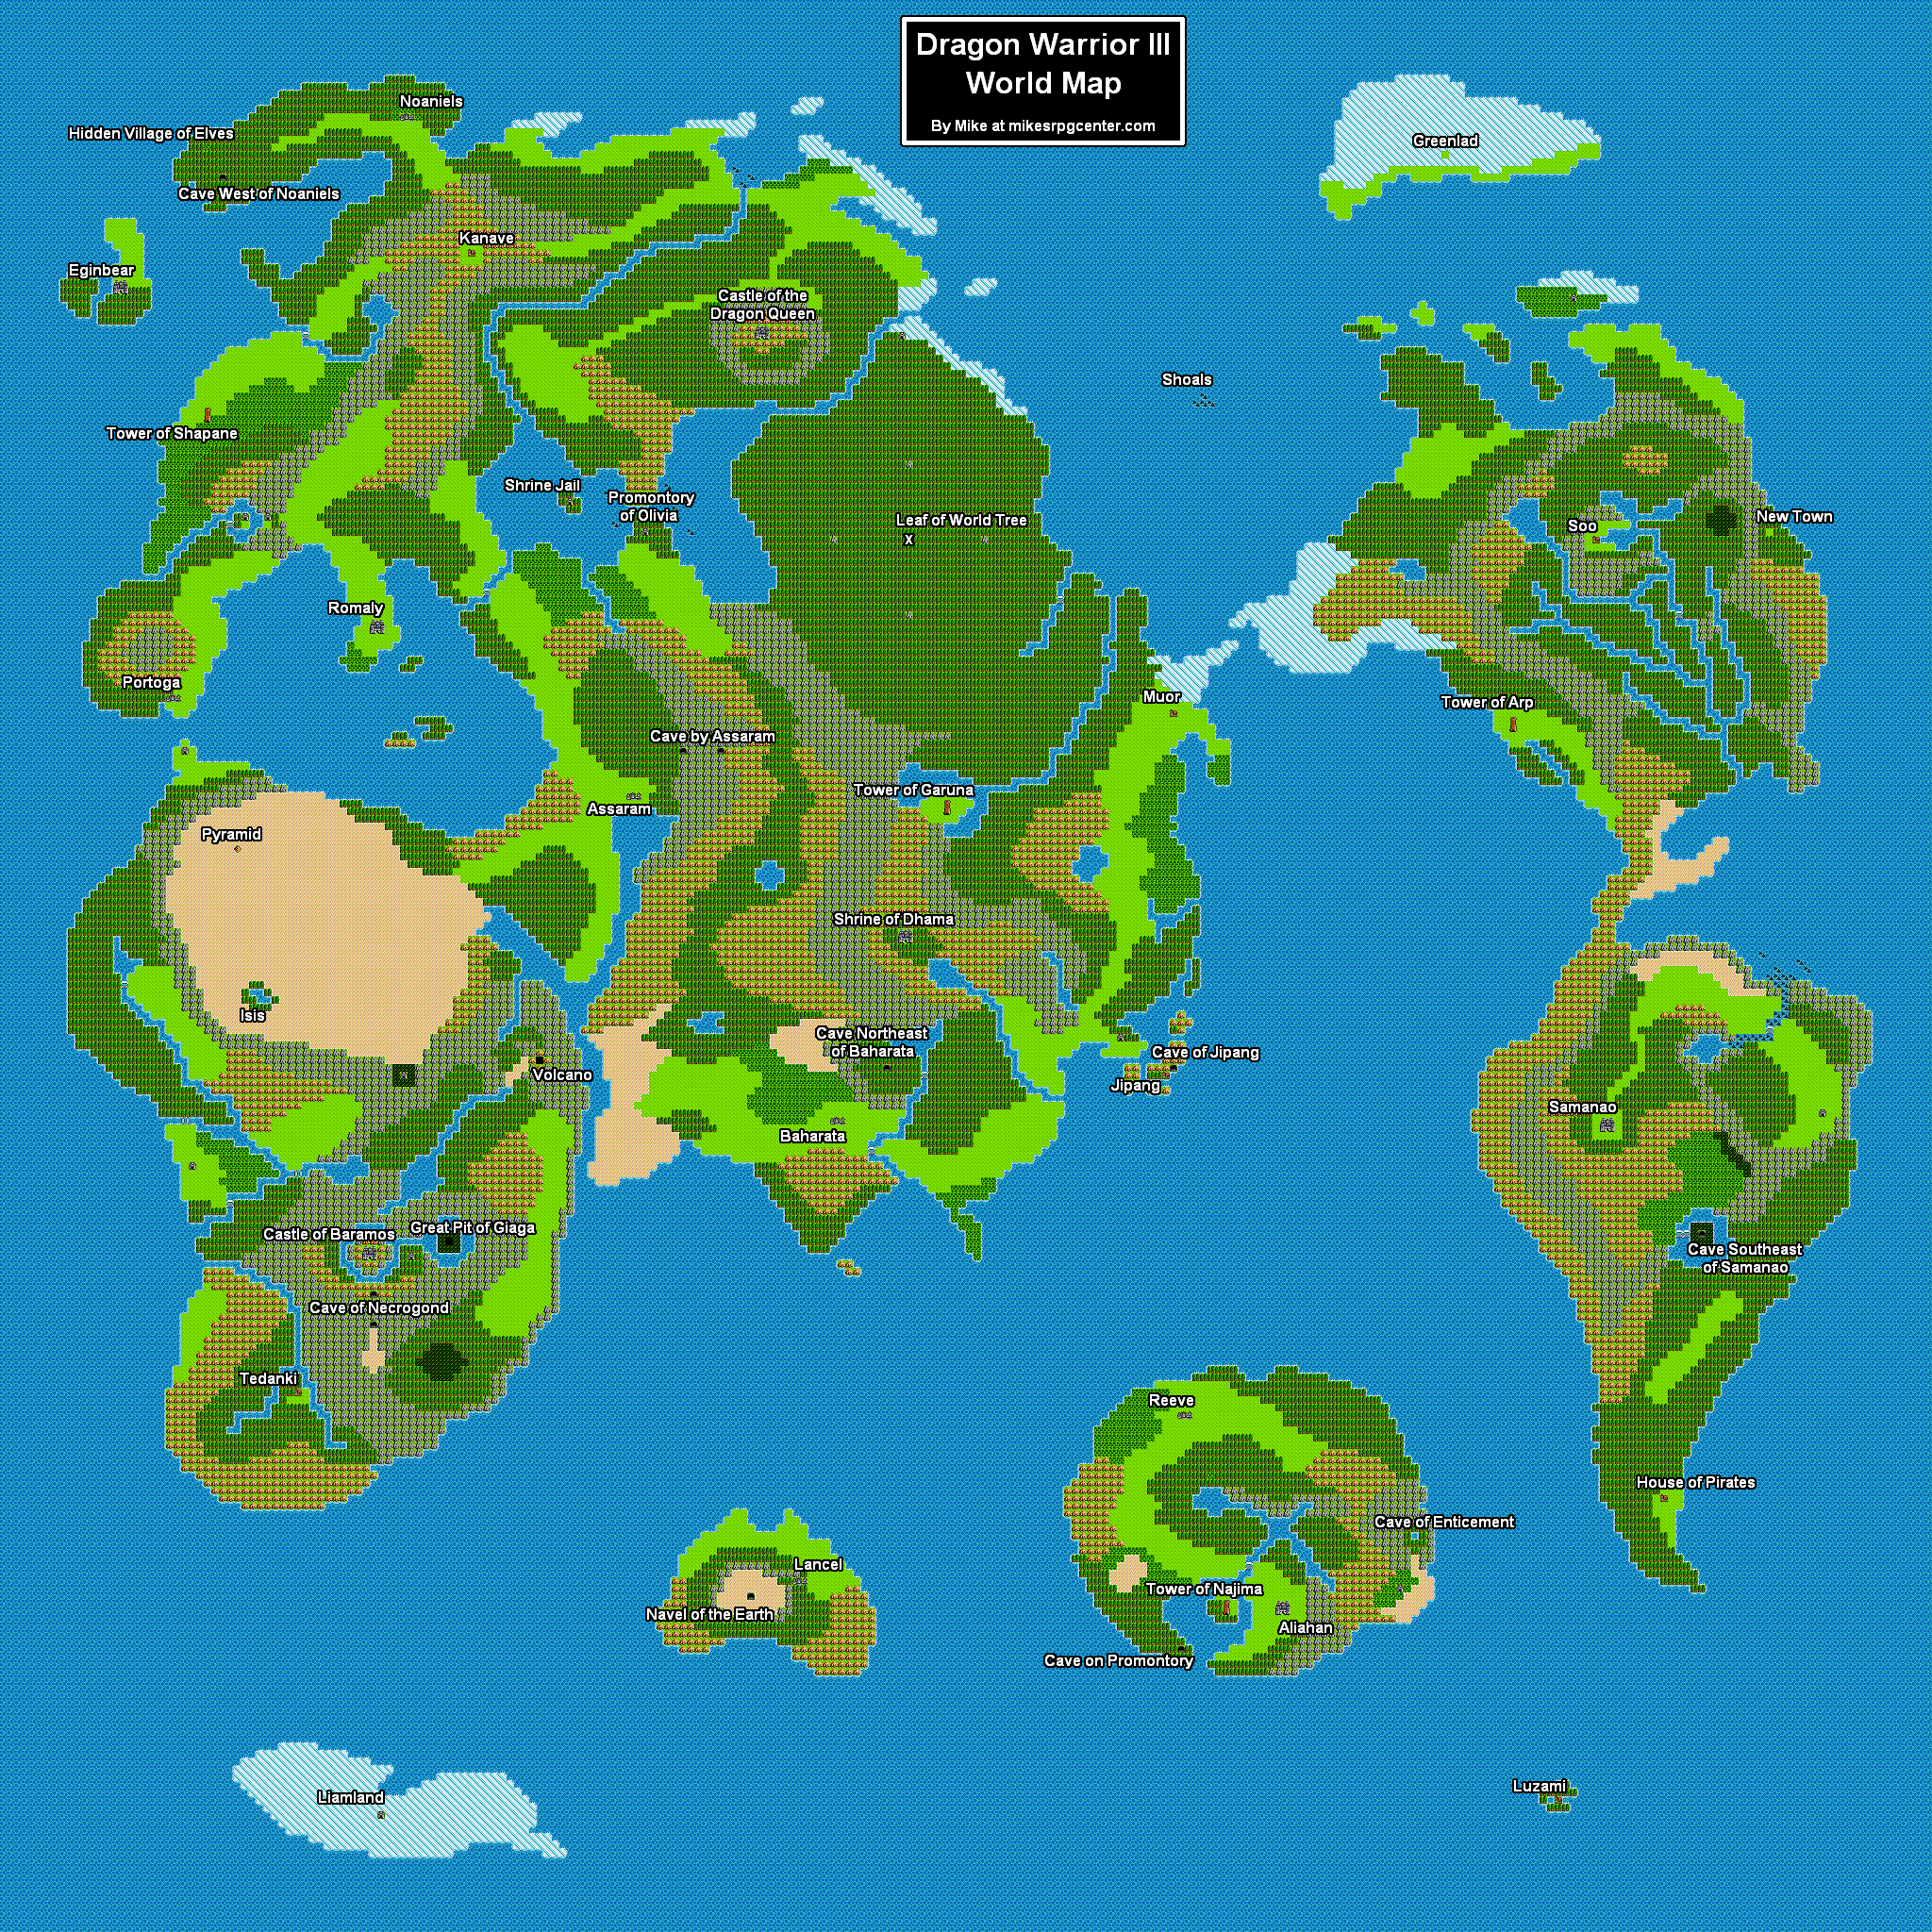 Dragon Quest 3 World Map dragon+warrior+3+world+map | Mike's RPG Center   Dragon Warrior